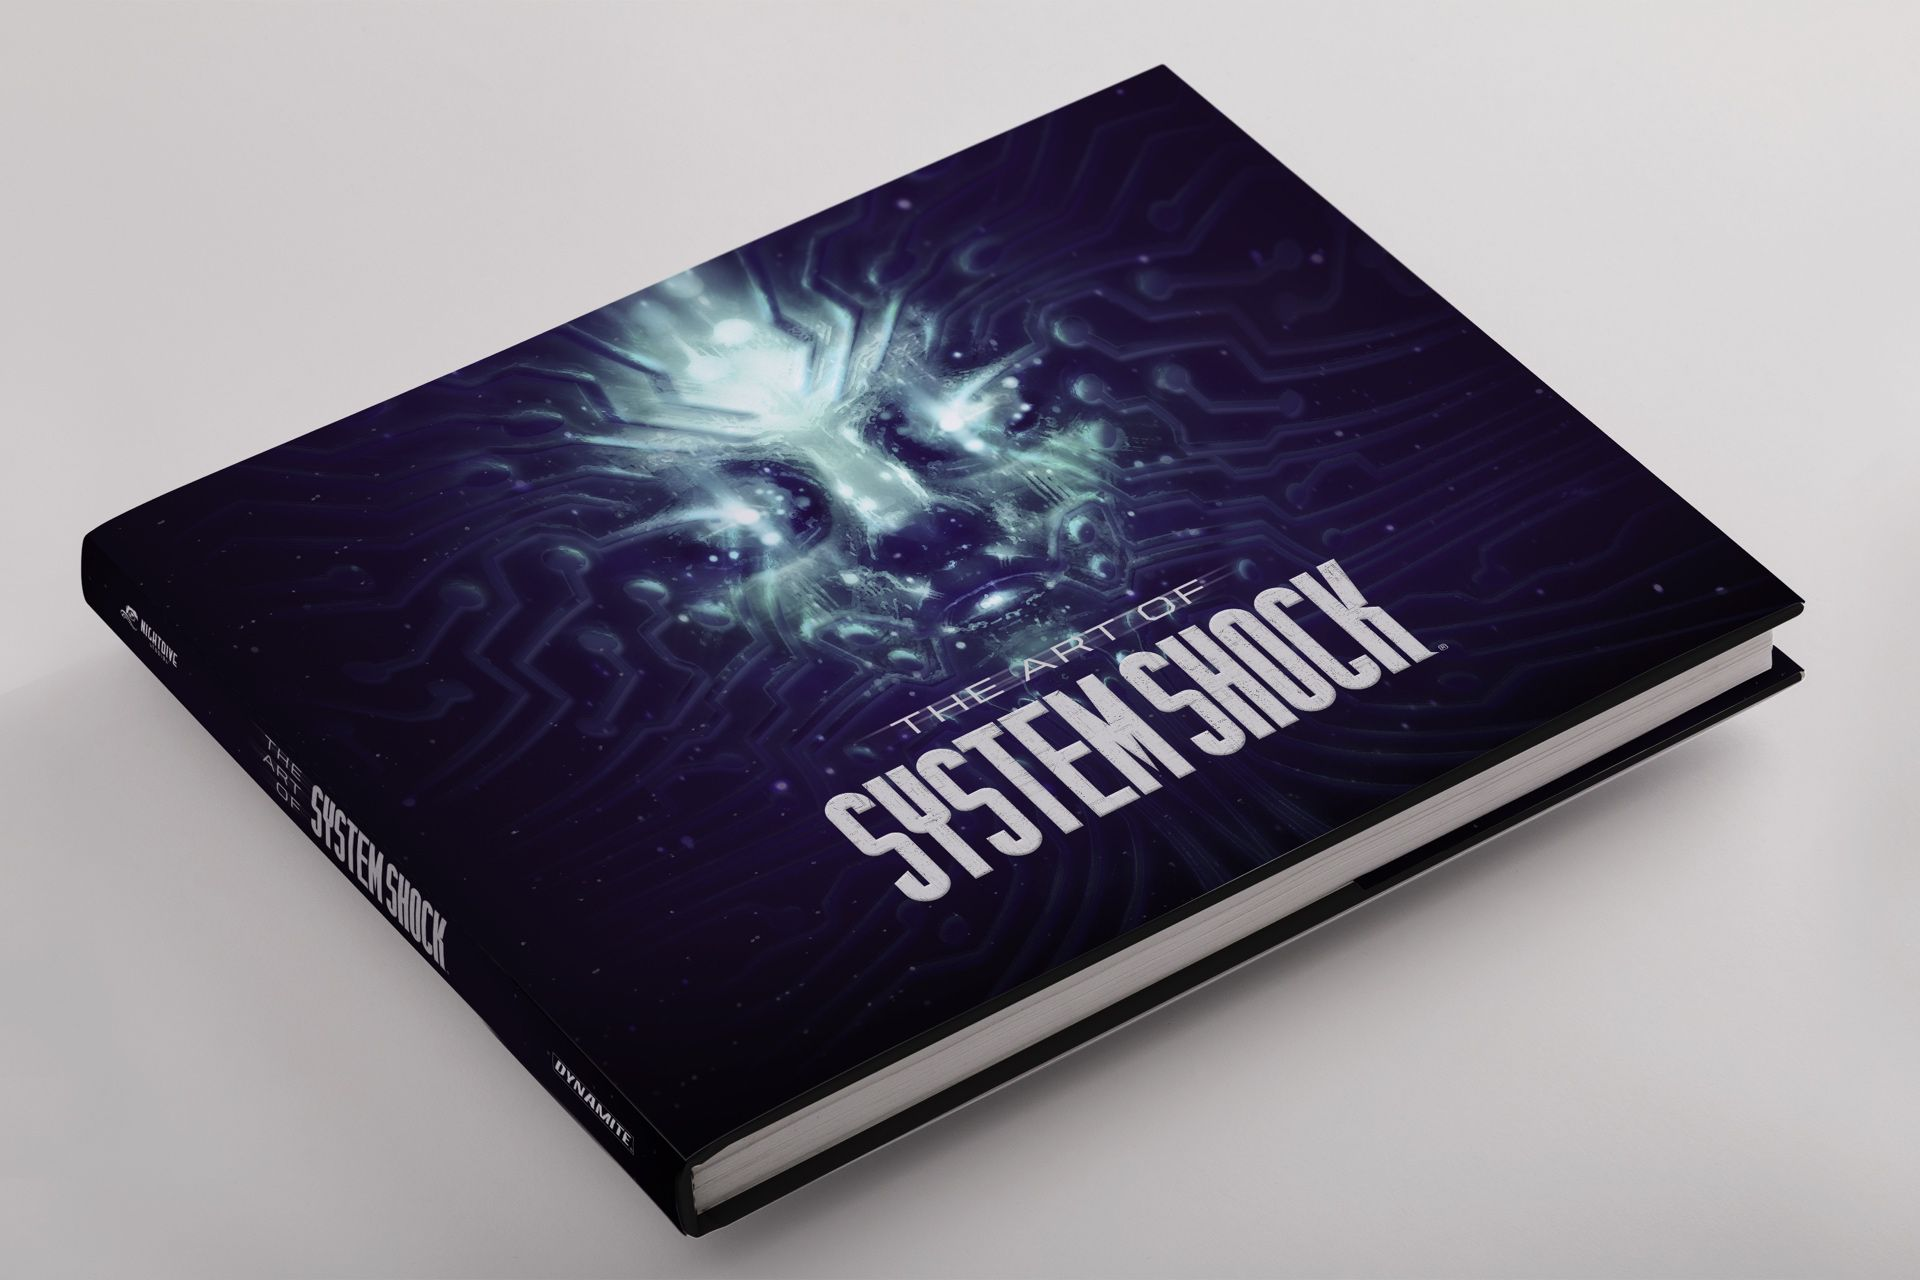 SS hardcover art book cover.0